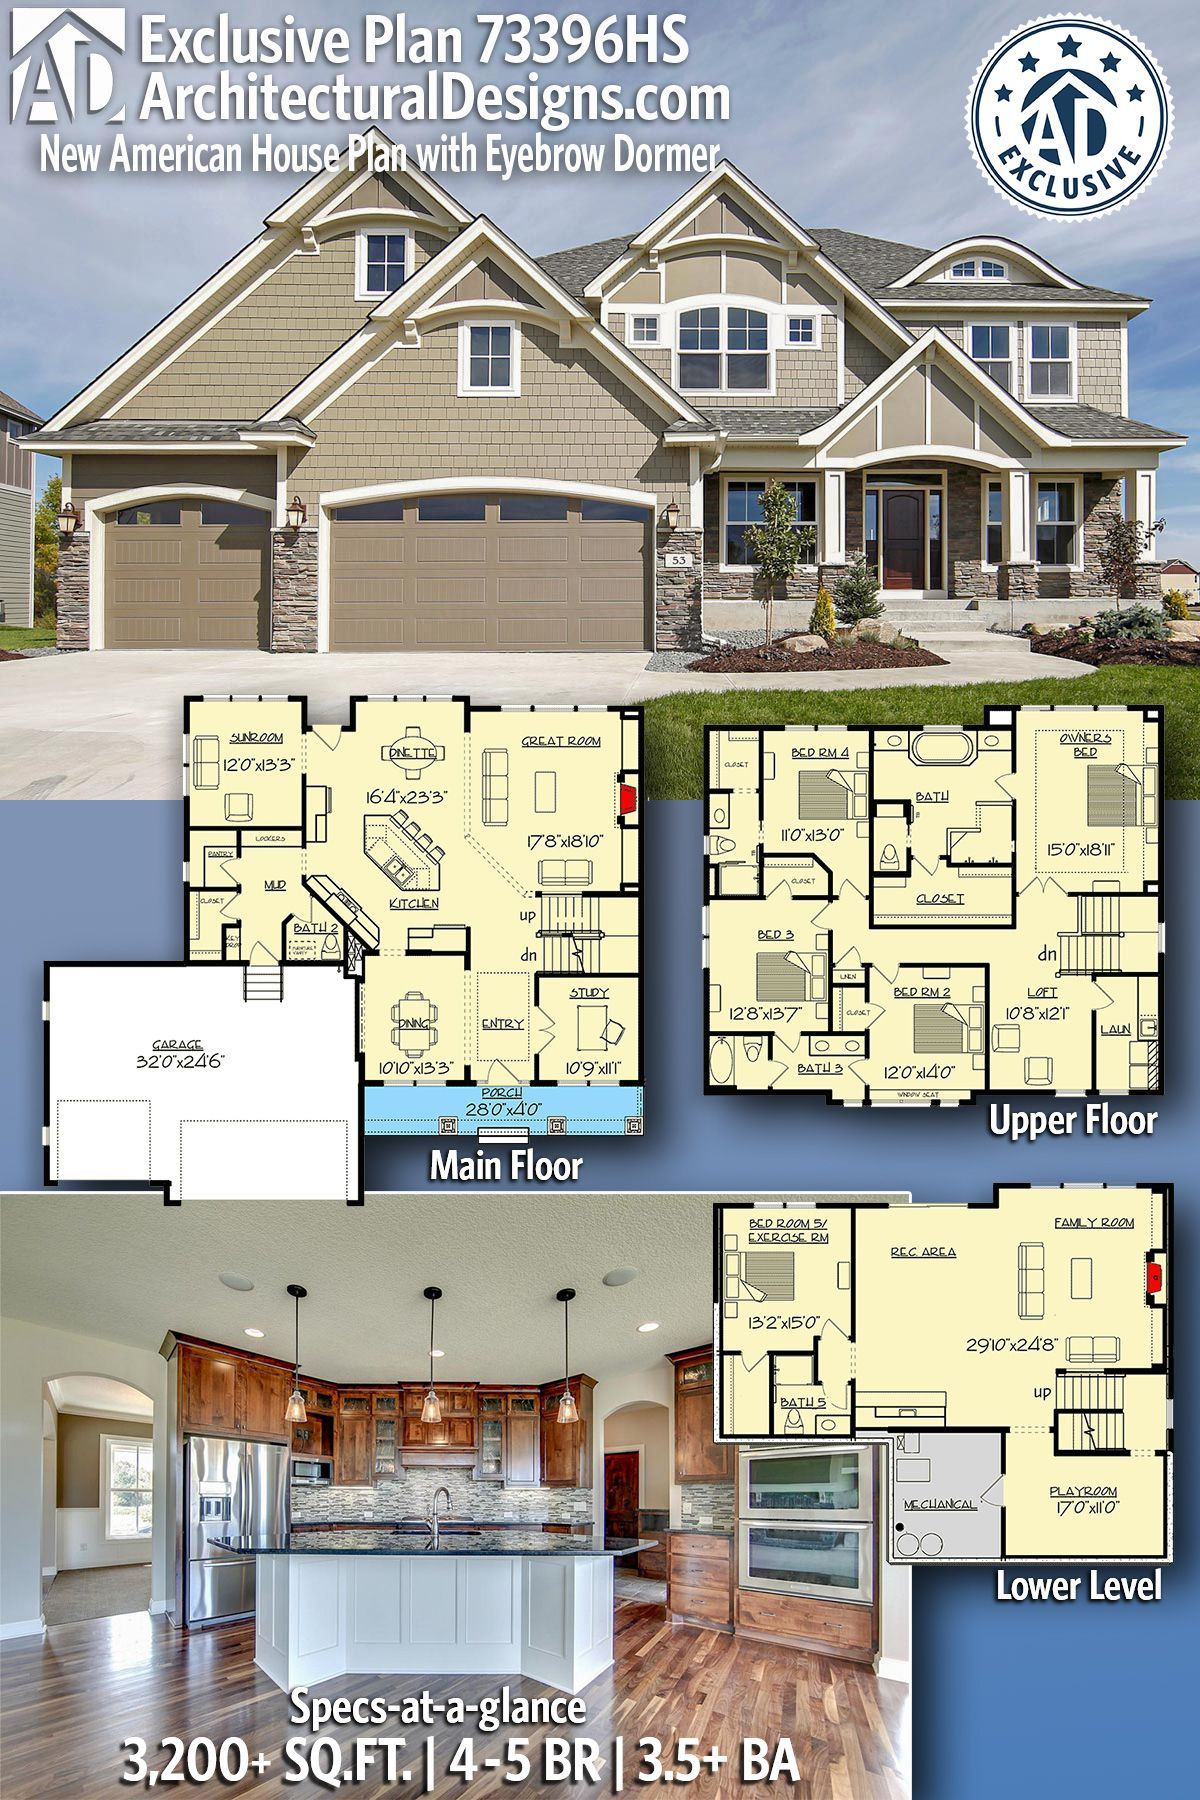 New House Floor Plans Best Of Plan Hs Exclusive New American House Plan with Eyebrow